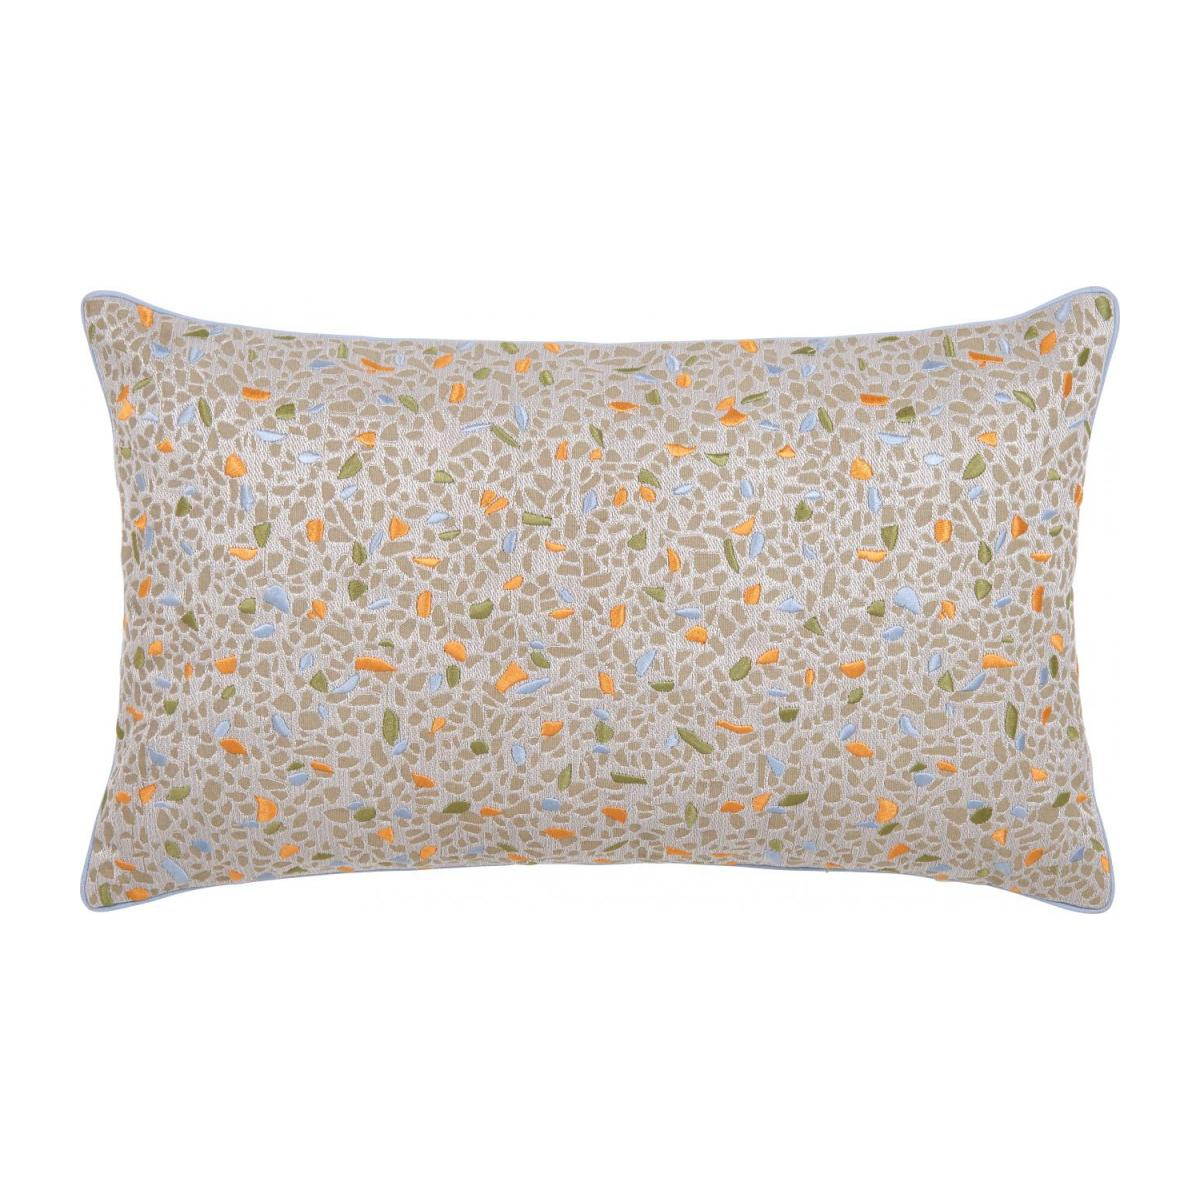 Embroidered jacquard cushion made of cotton 30x50cm n°1